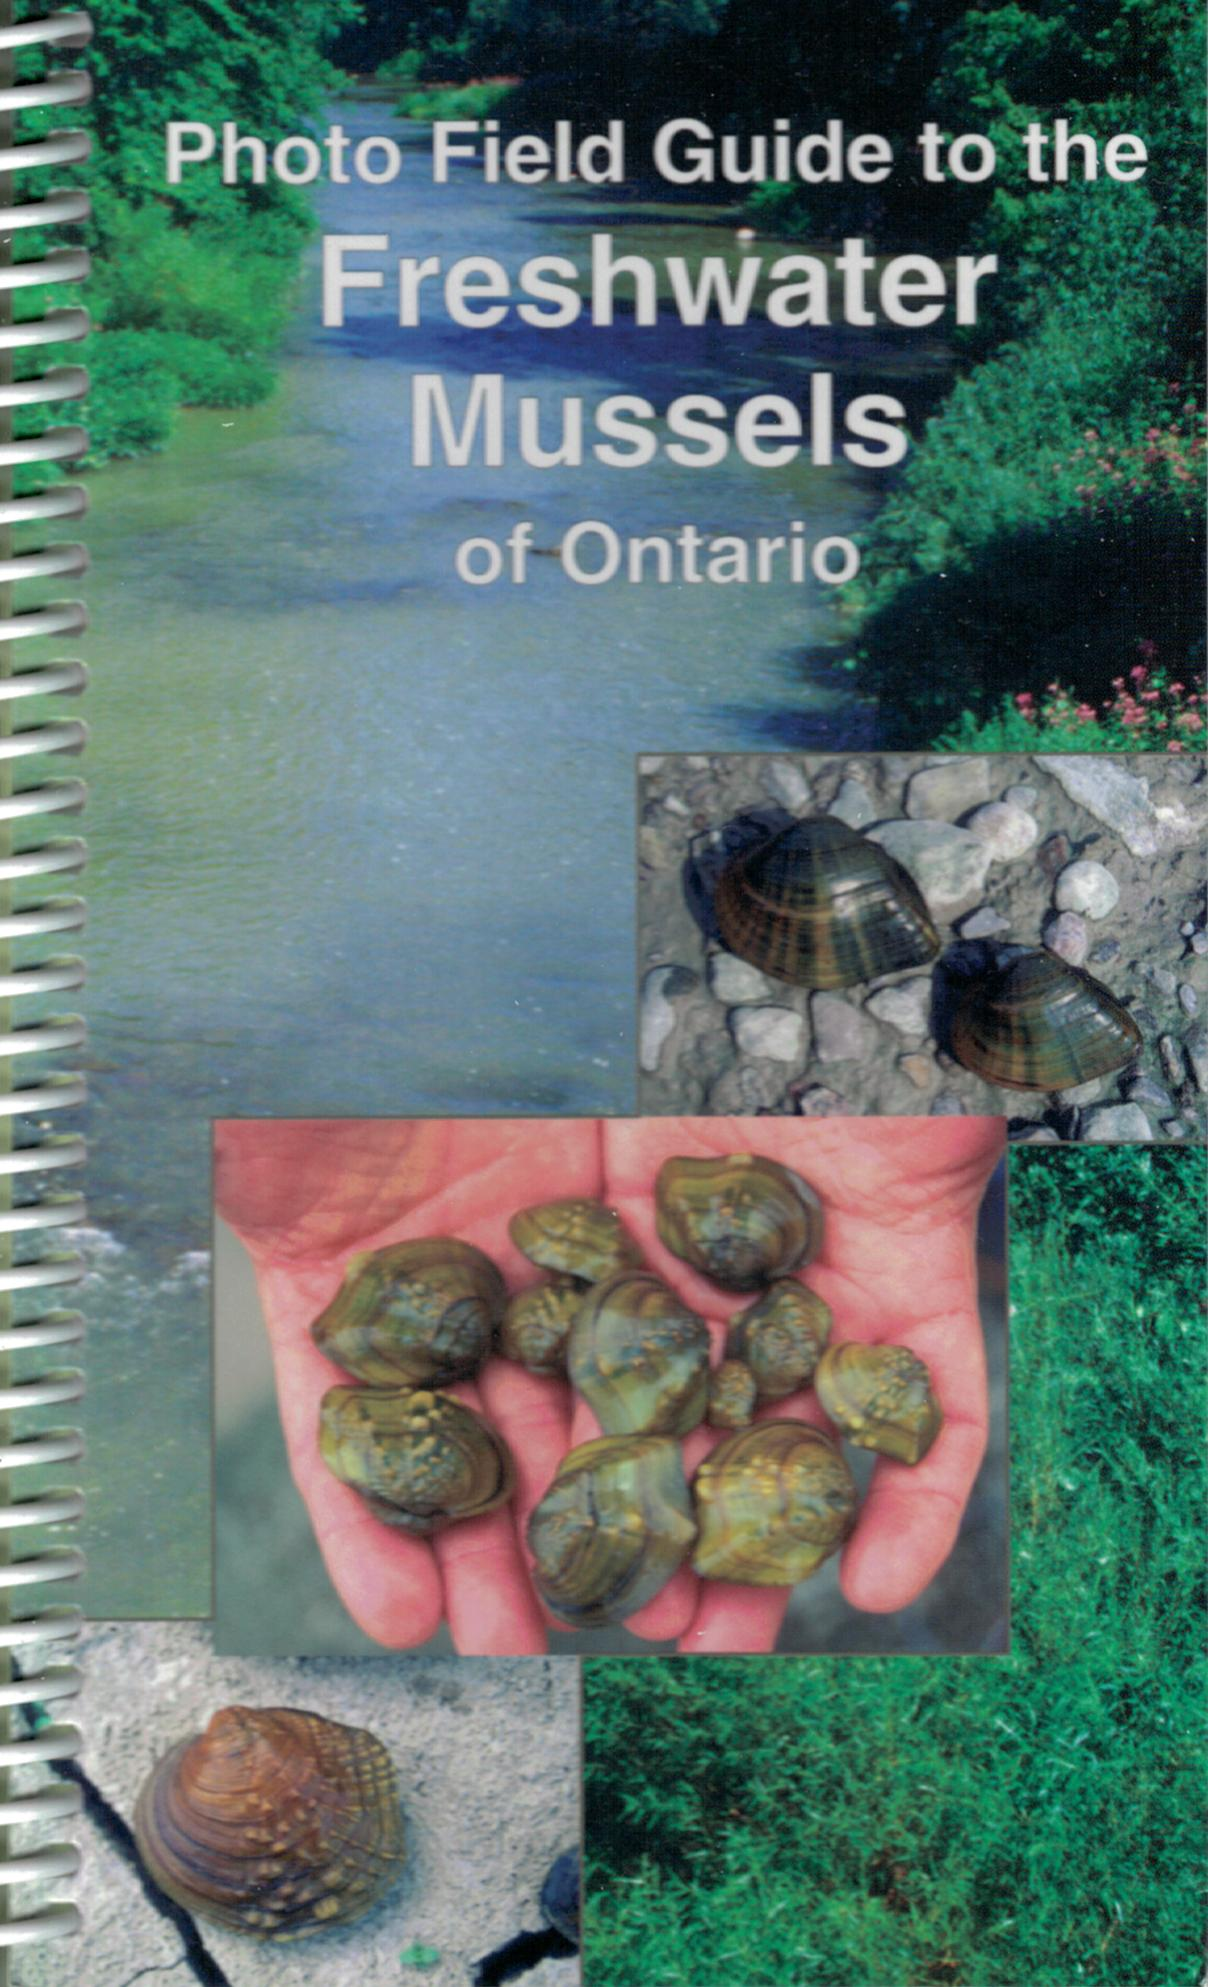 Photo Field Guide to the Freshwater Mussels of Ontario